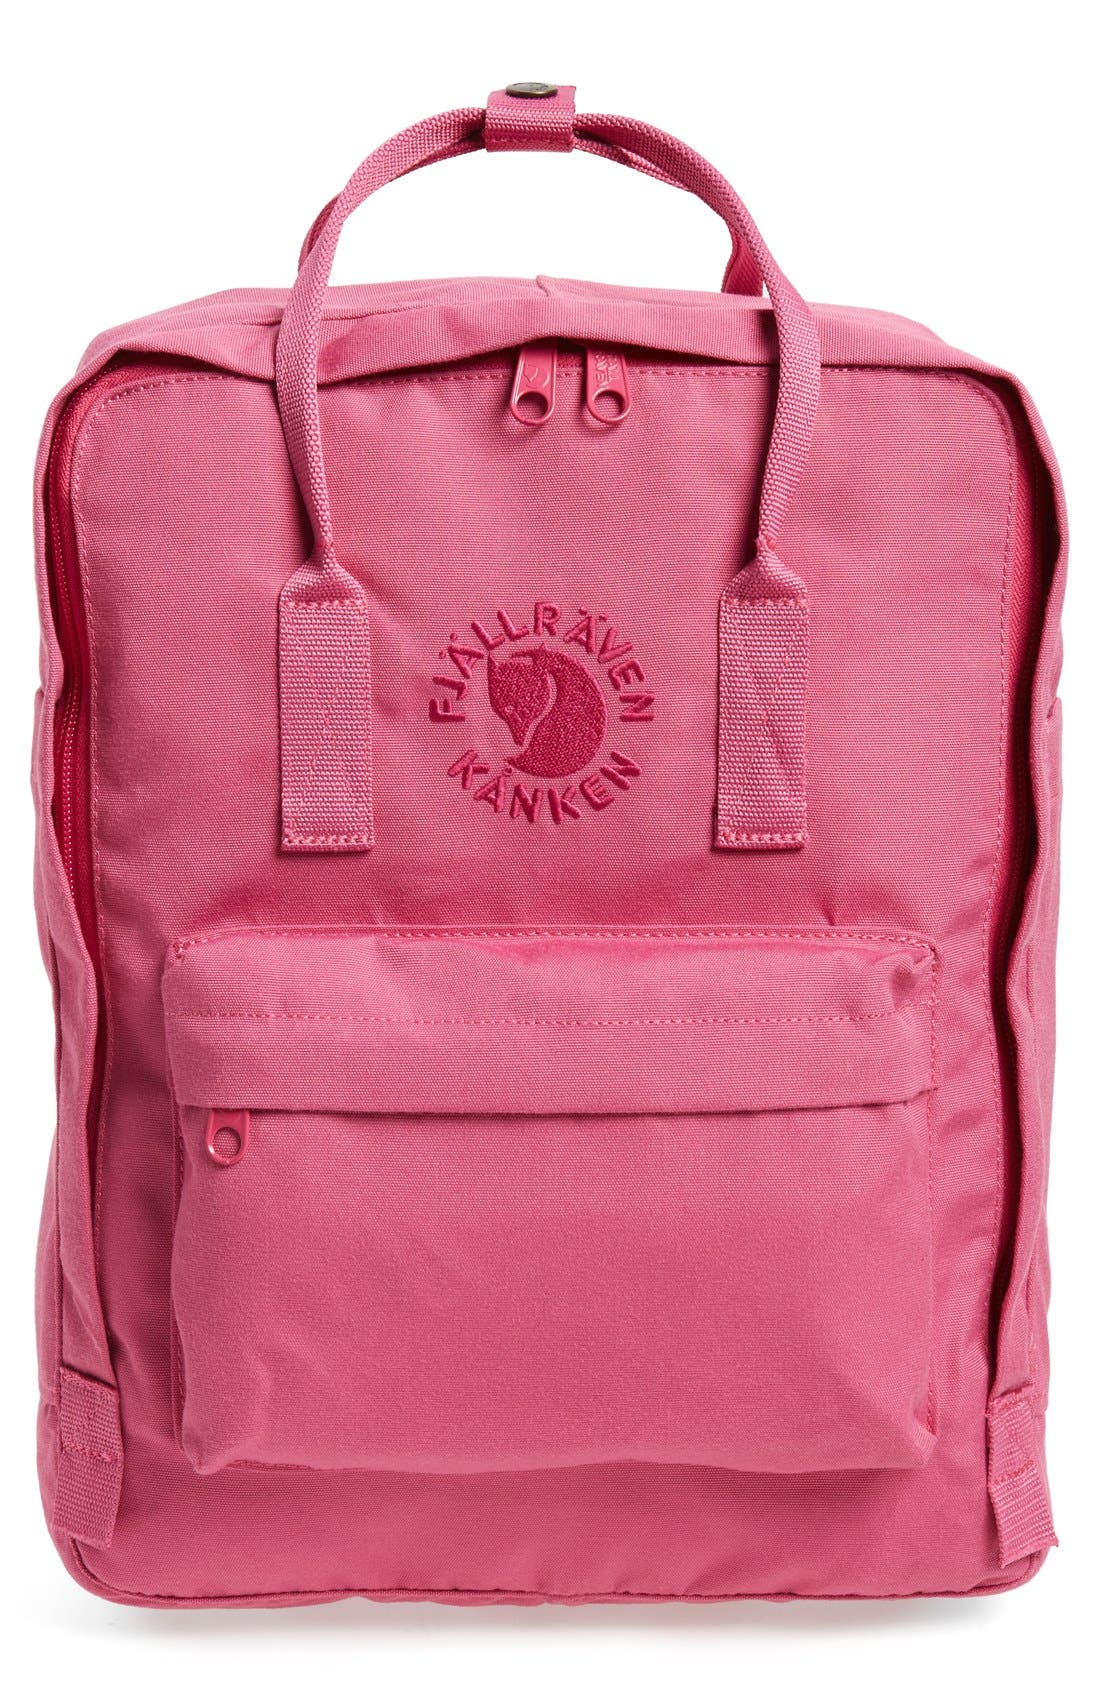 Fjällräven Re-Kånken Water Resistant Backpack